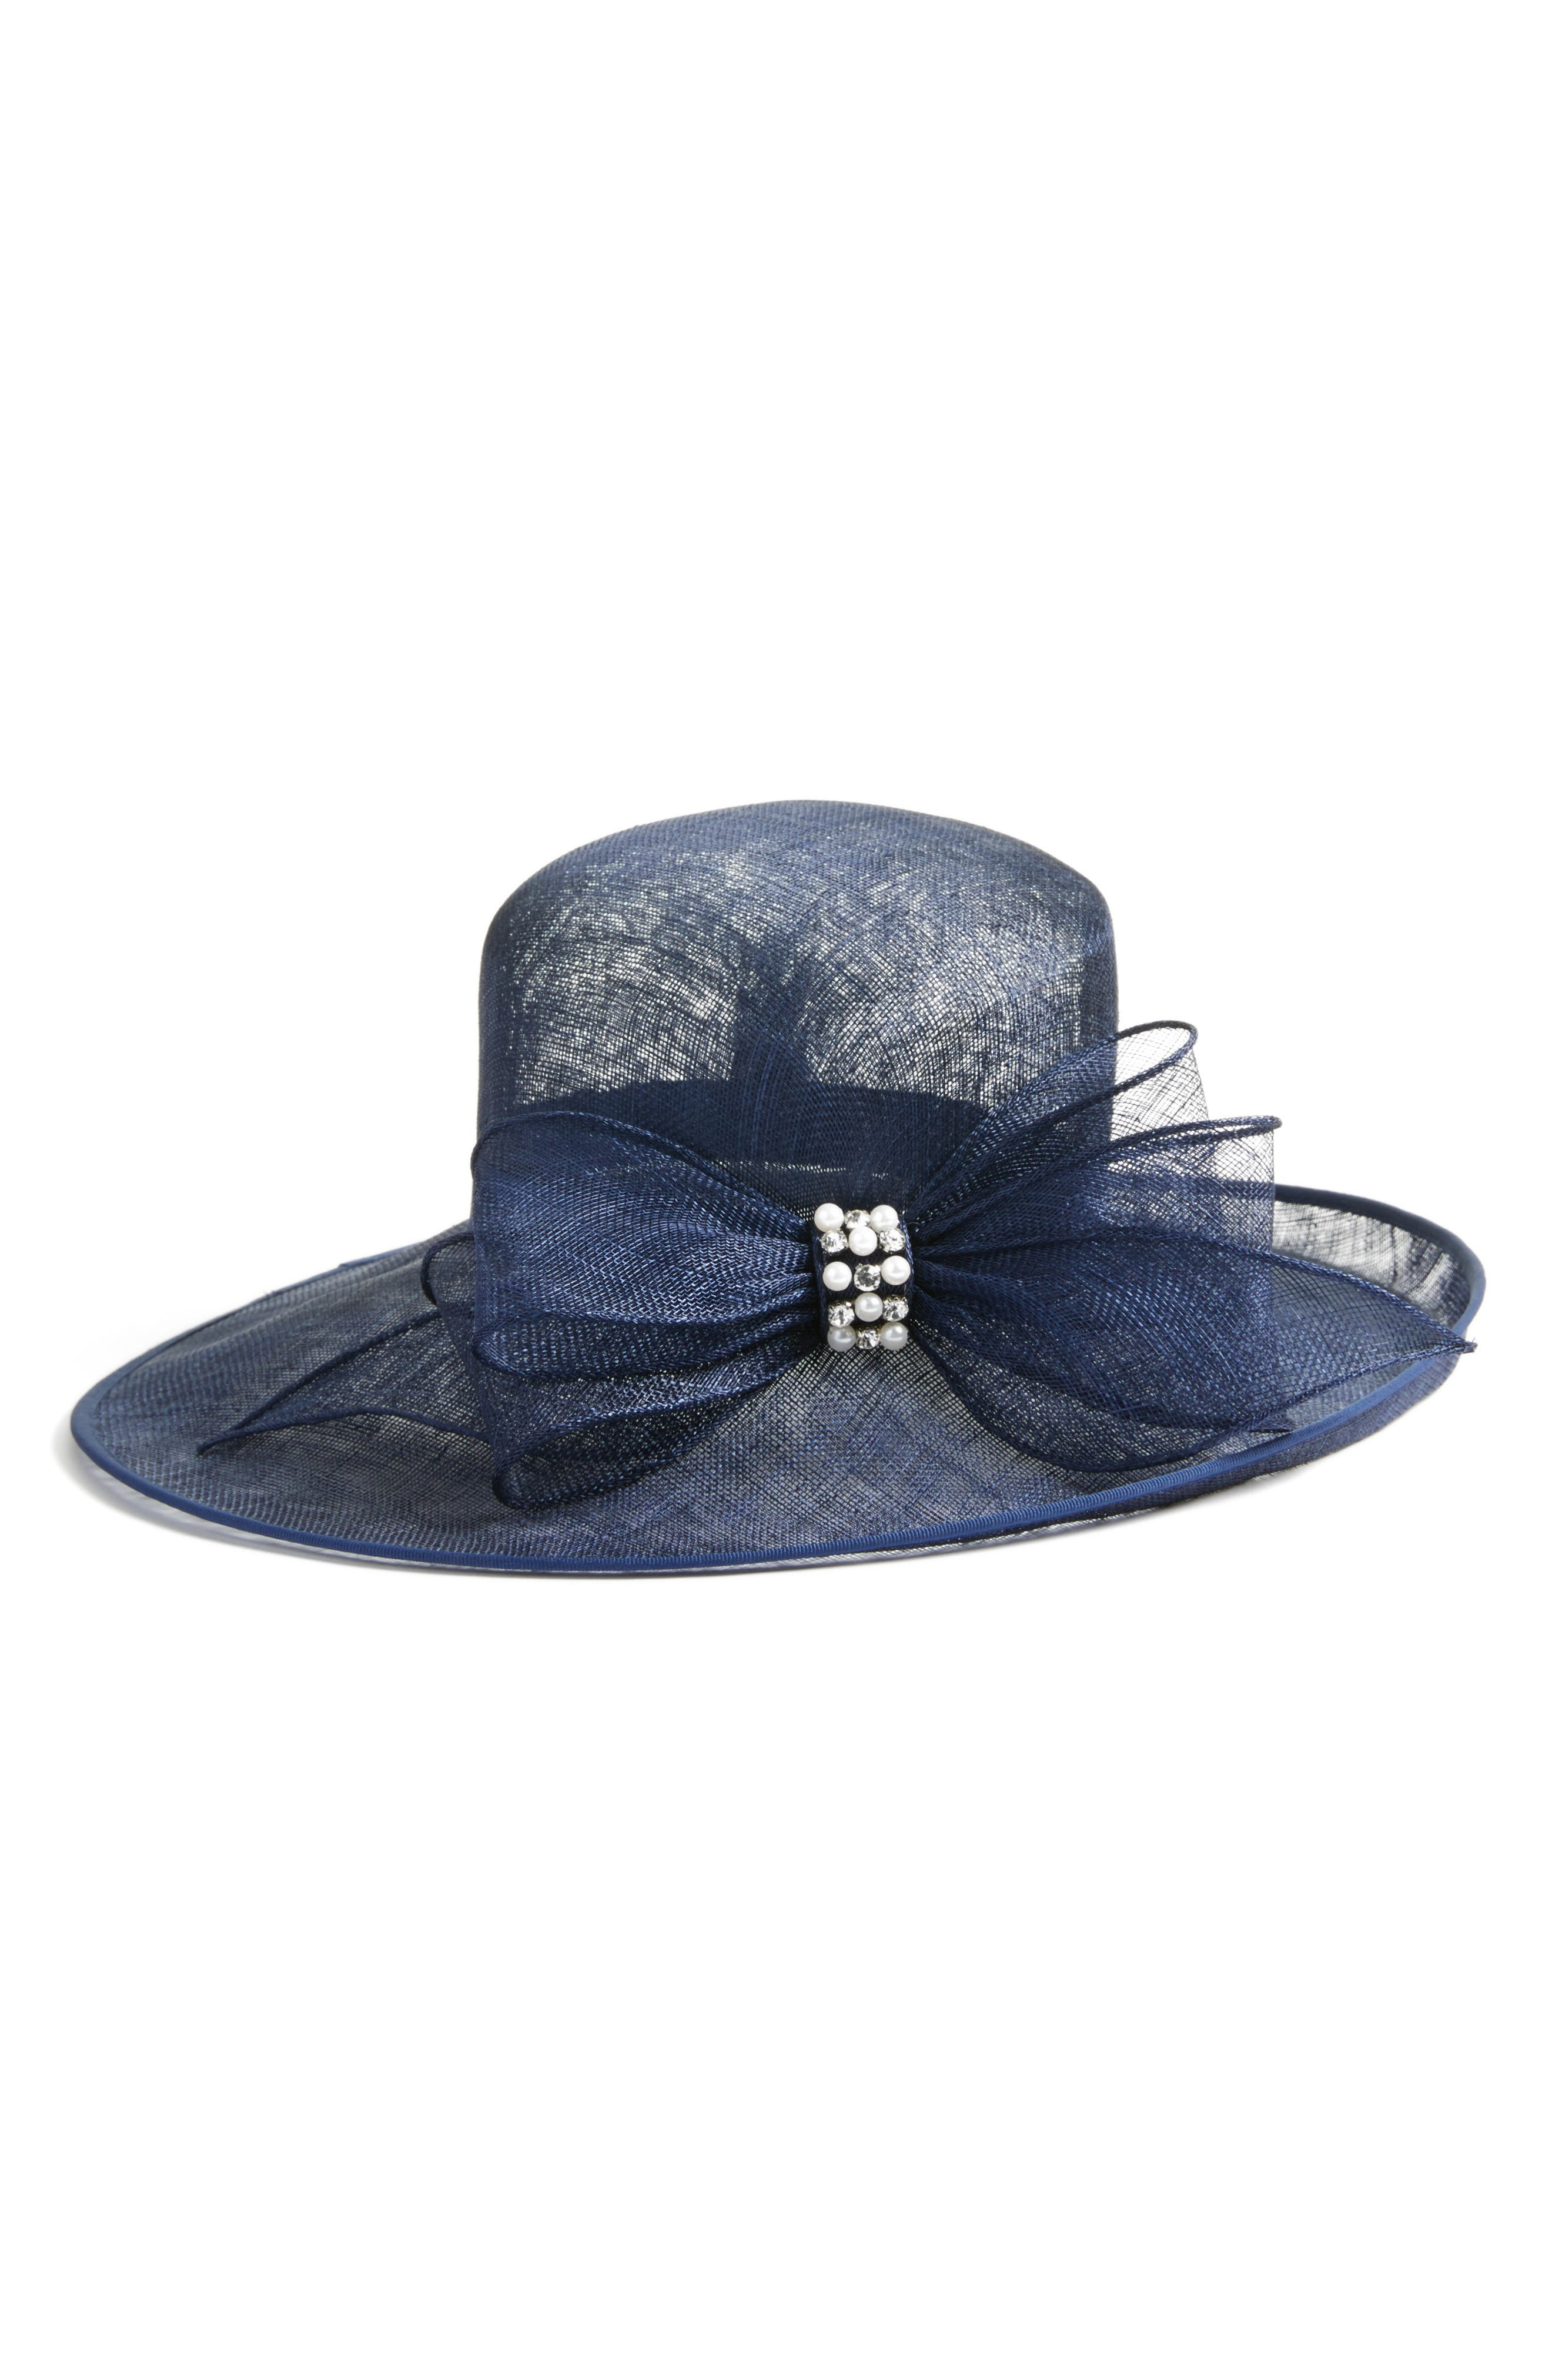 Jeweled Bow Hat,                         Main,                         color, 401